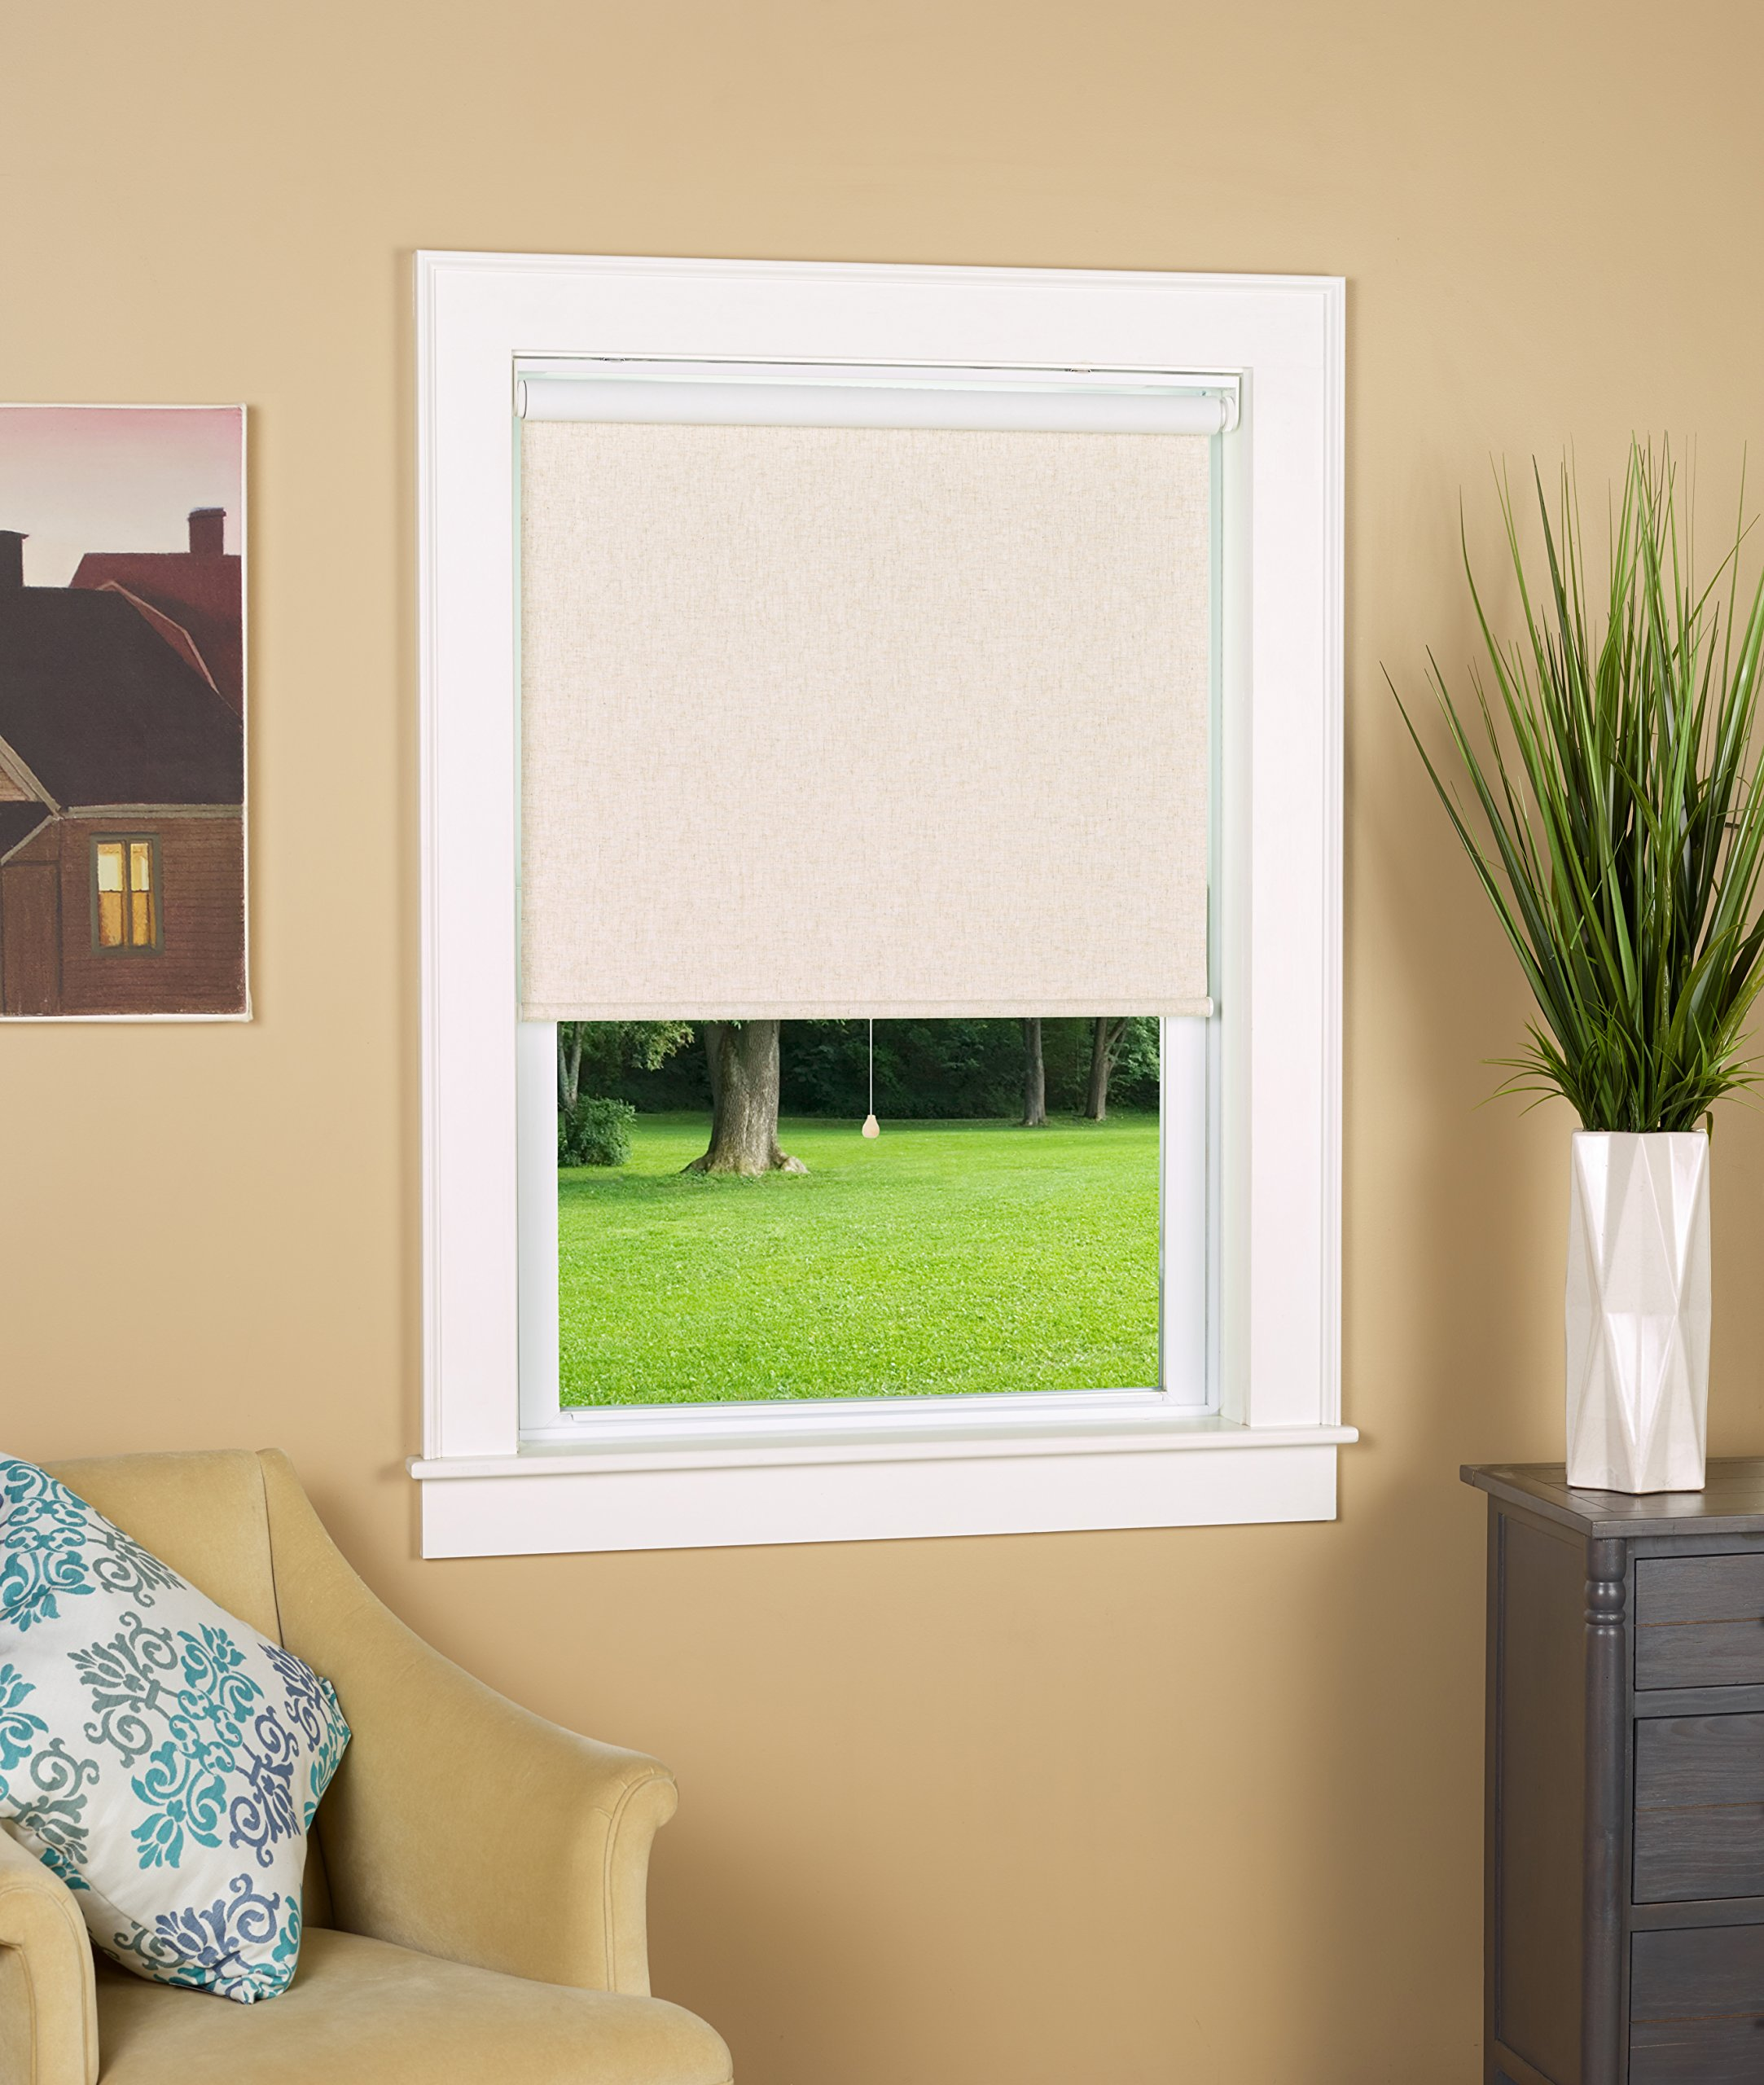 online up sale google search bay window target blindside bamboo windows south blinds decor africa big shades roll lots